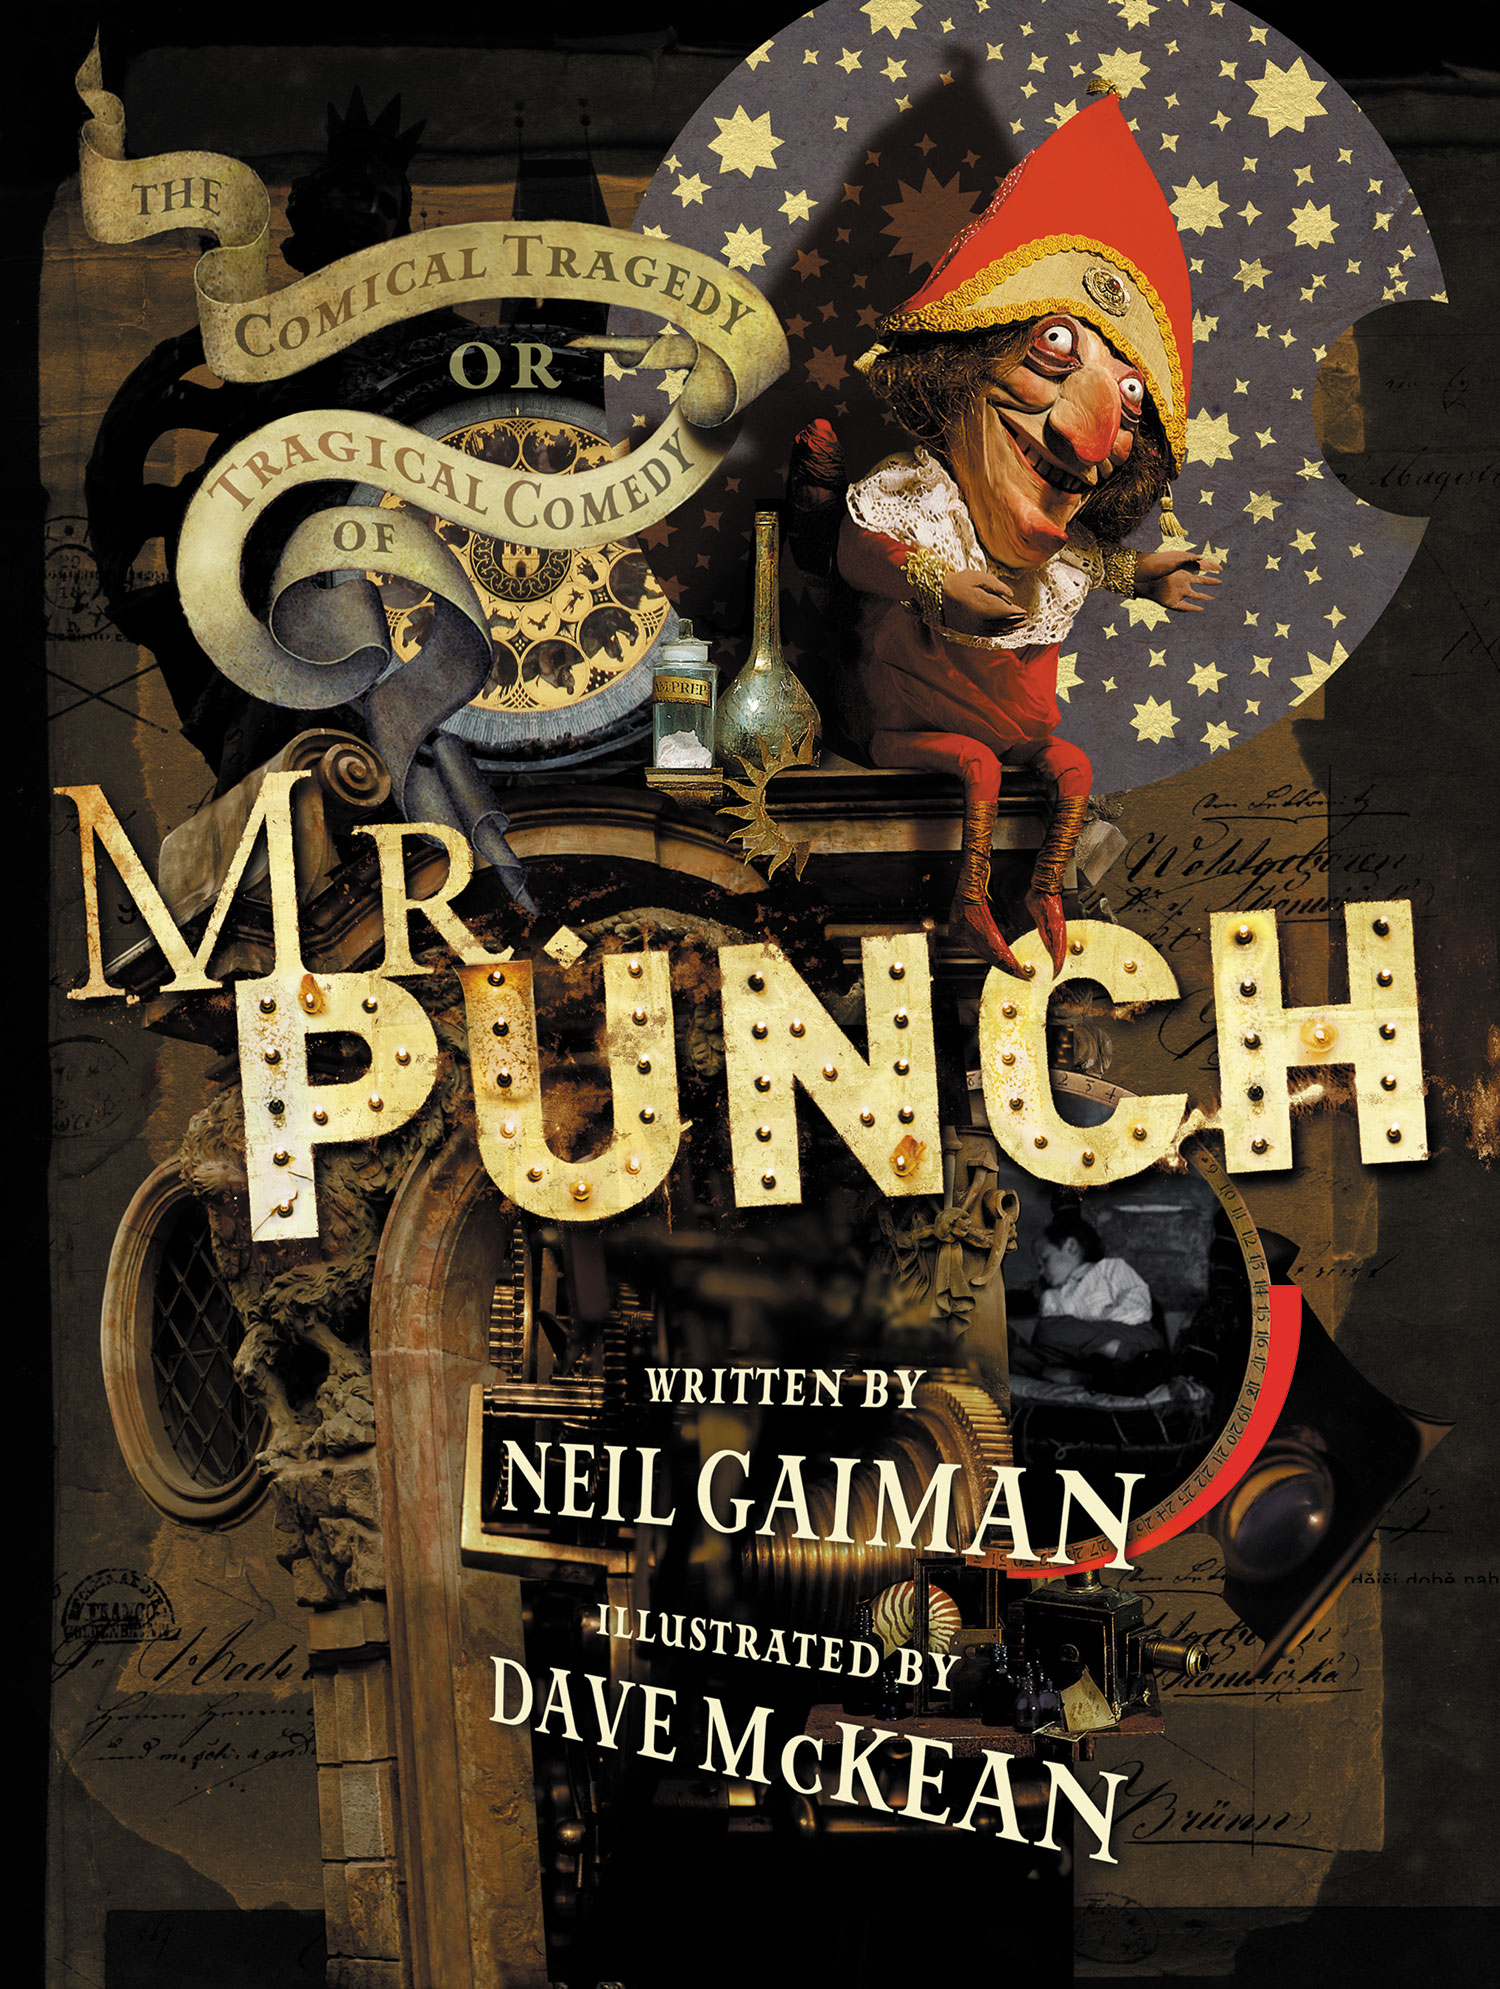 The Tragical Comedy or Comical Tragedy of Mr. Punch book cover